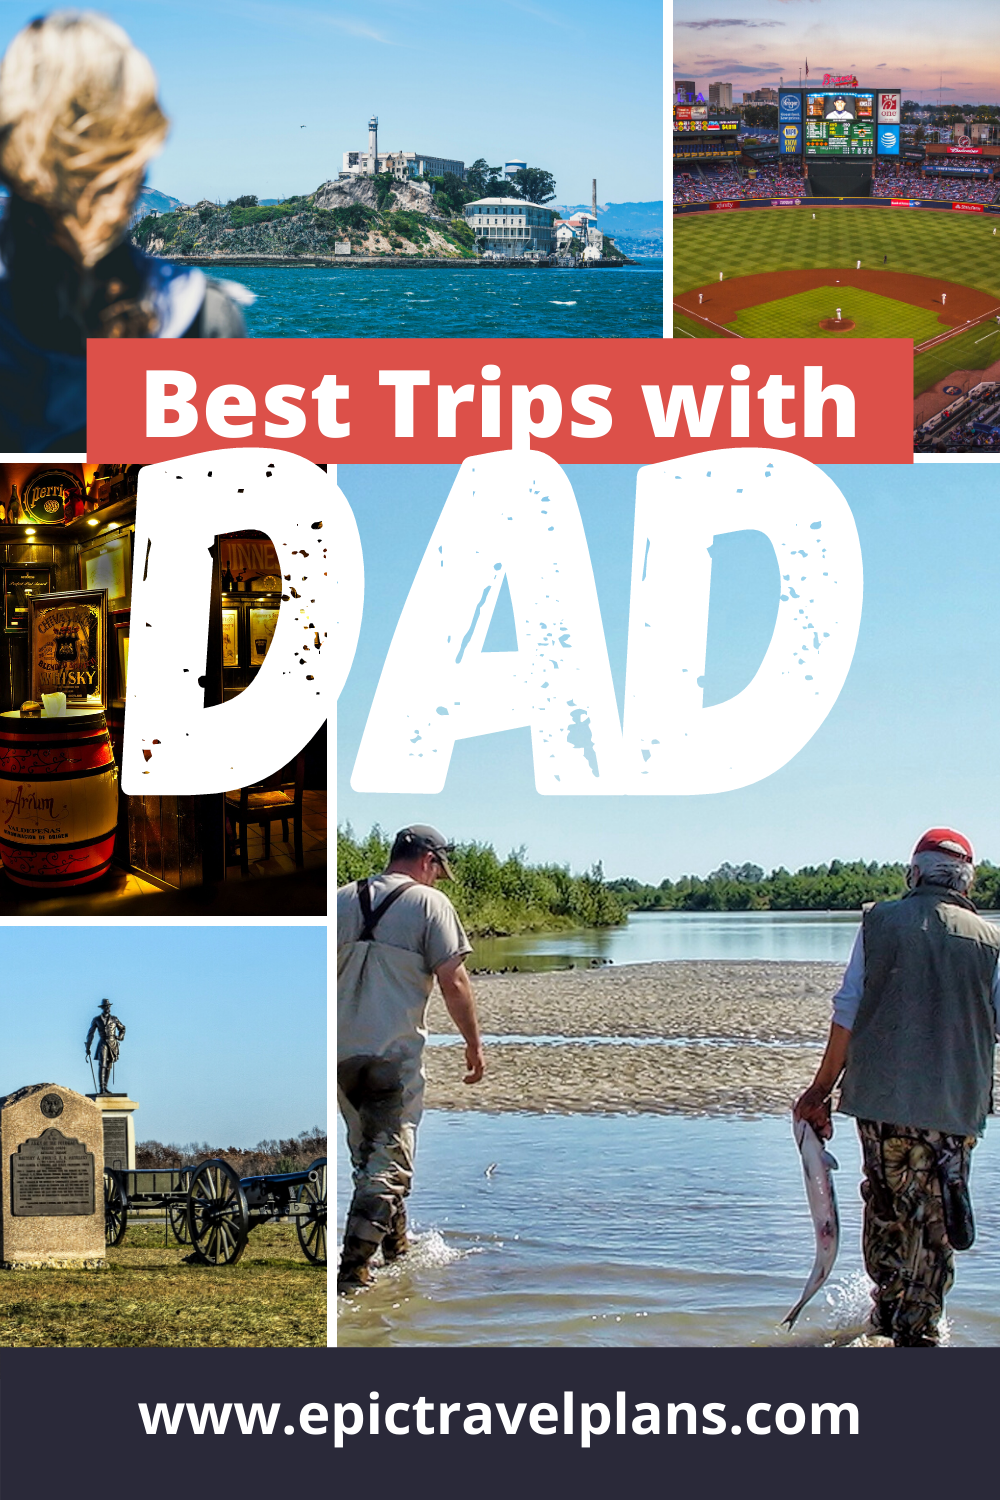 Best trips with dad, trips for father son or daughter in USA and the world